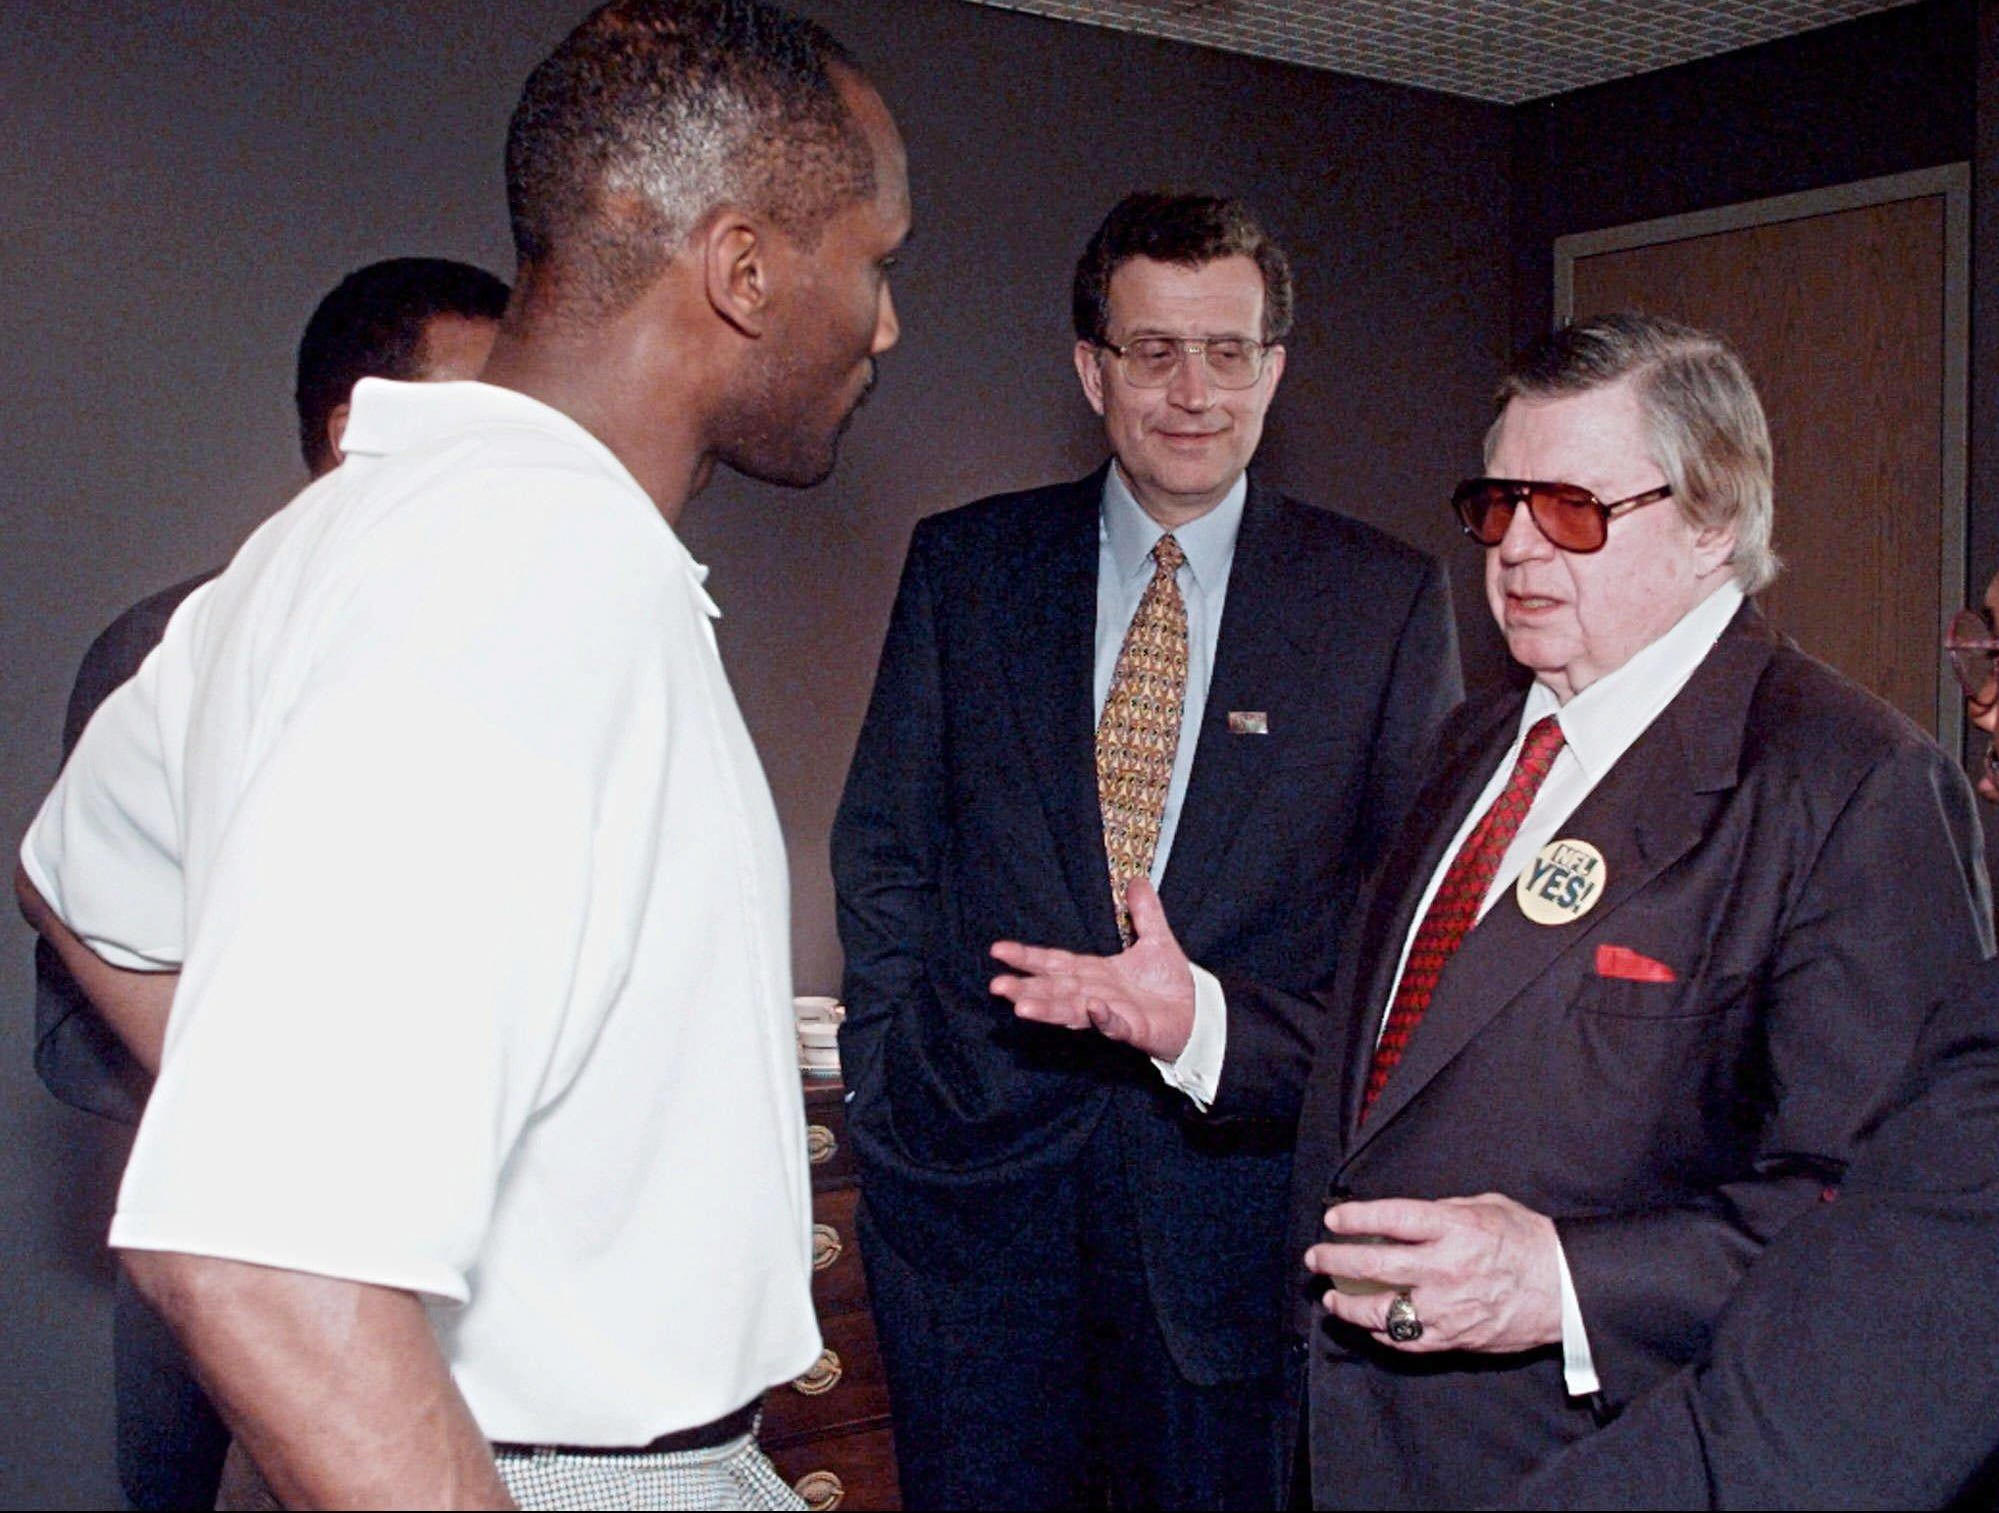 Houston Oilers owner Bud Adams, right, talks with Tennessee State University football coach L. C. Cole, left, during a visit to the Nashville May 6, 1996. NFL Commissioner Paul Tagliabue, center, and Adams made several stops around Nashville the day before the public votes on spending public funds on the 65,000-seat stadium the Oilers will play in if they move to Nashville. Tennessee State will play its home games in the new stadium if the public votes in favor of the spending.